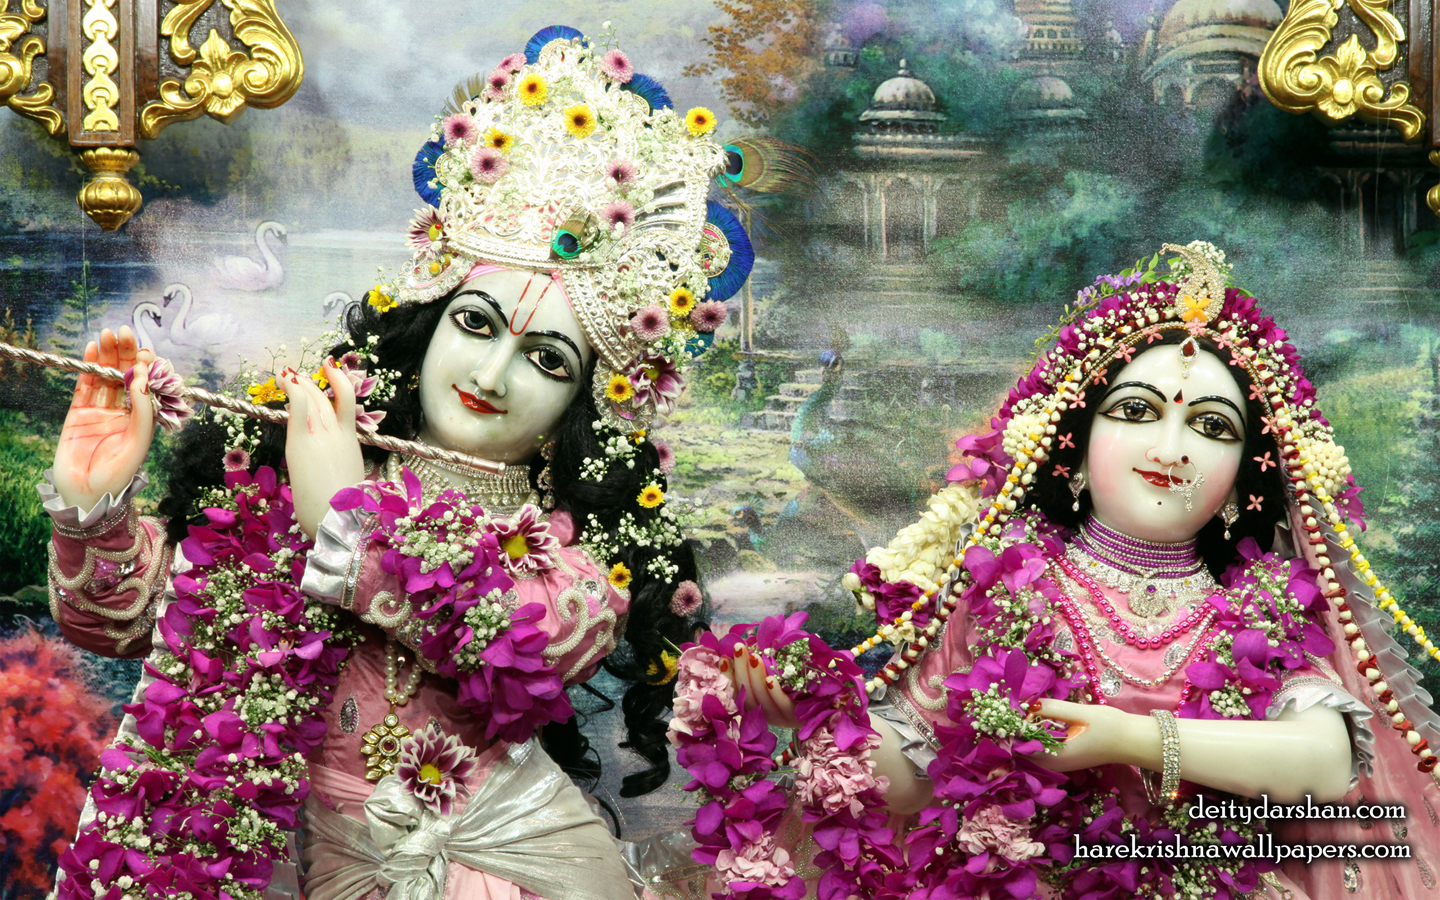 Sri Sri Radha Gopinath Close up Wallpaper (051) Size 1440x900 Download